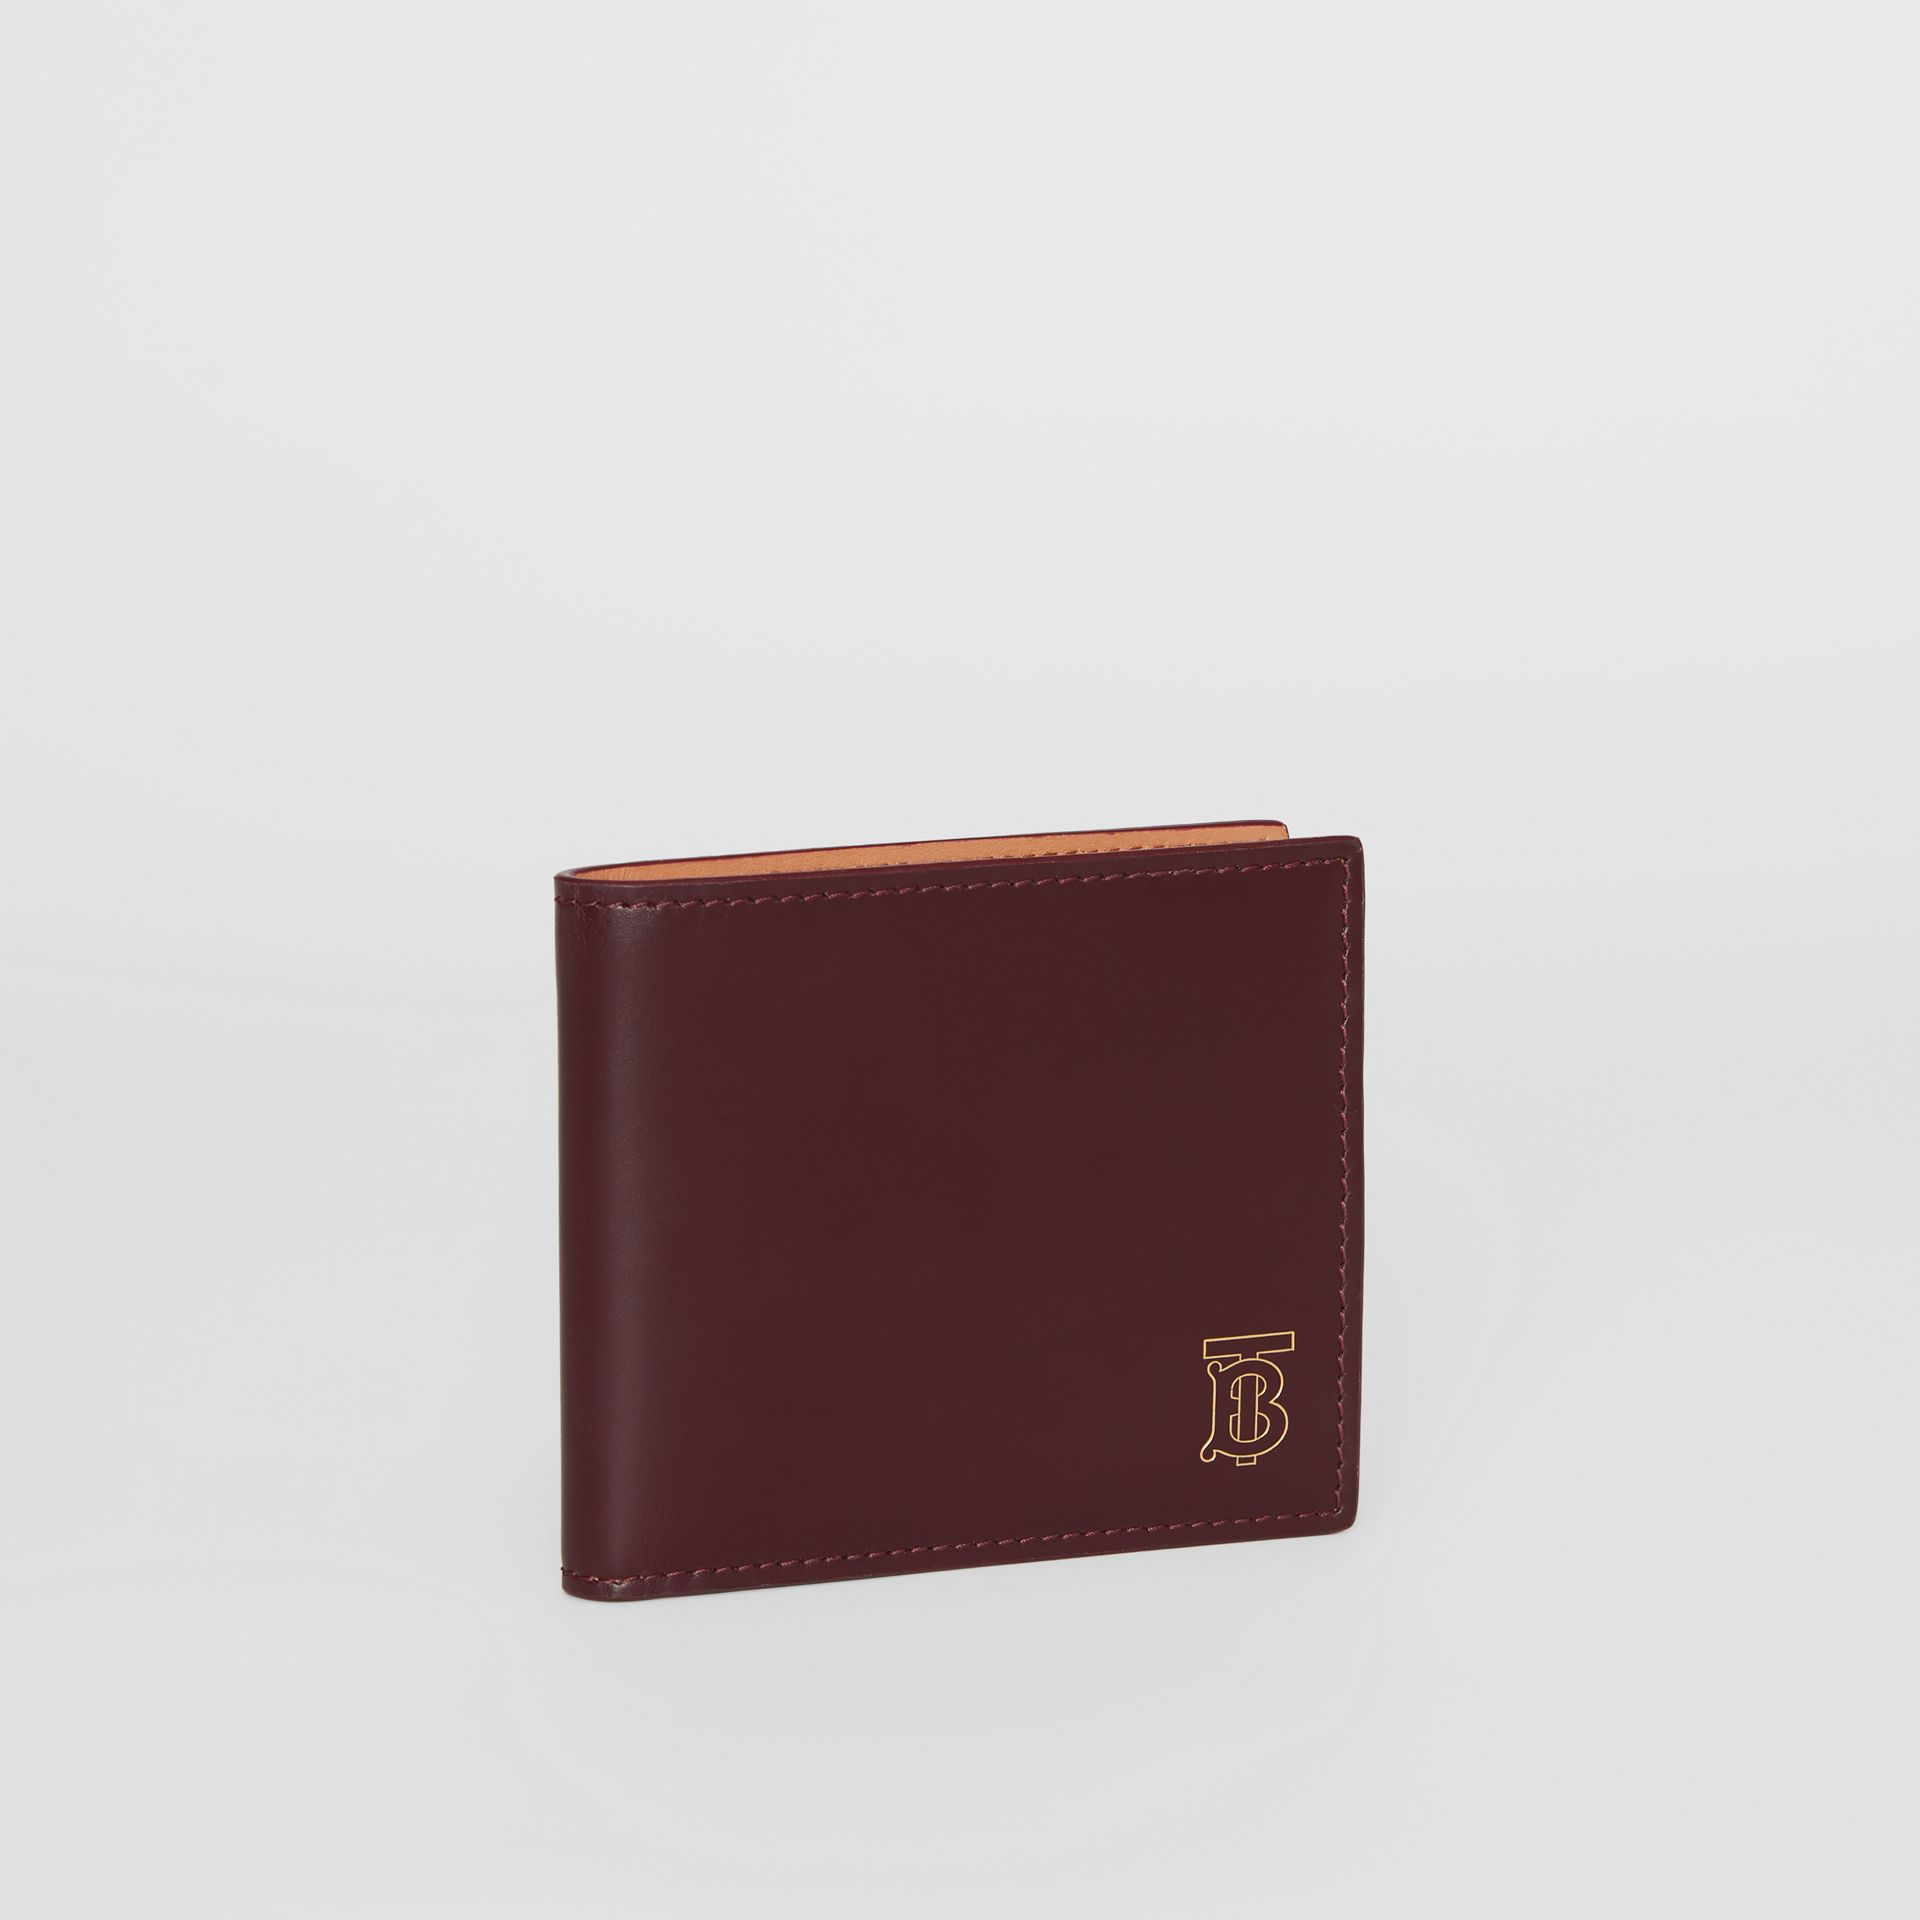 Monogram Motif Leather International Bifold Wallet in Oxblood - Men | Burberry Australia - gallery image 3